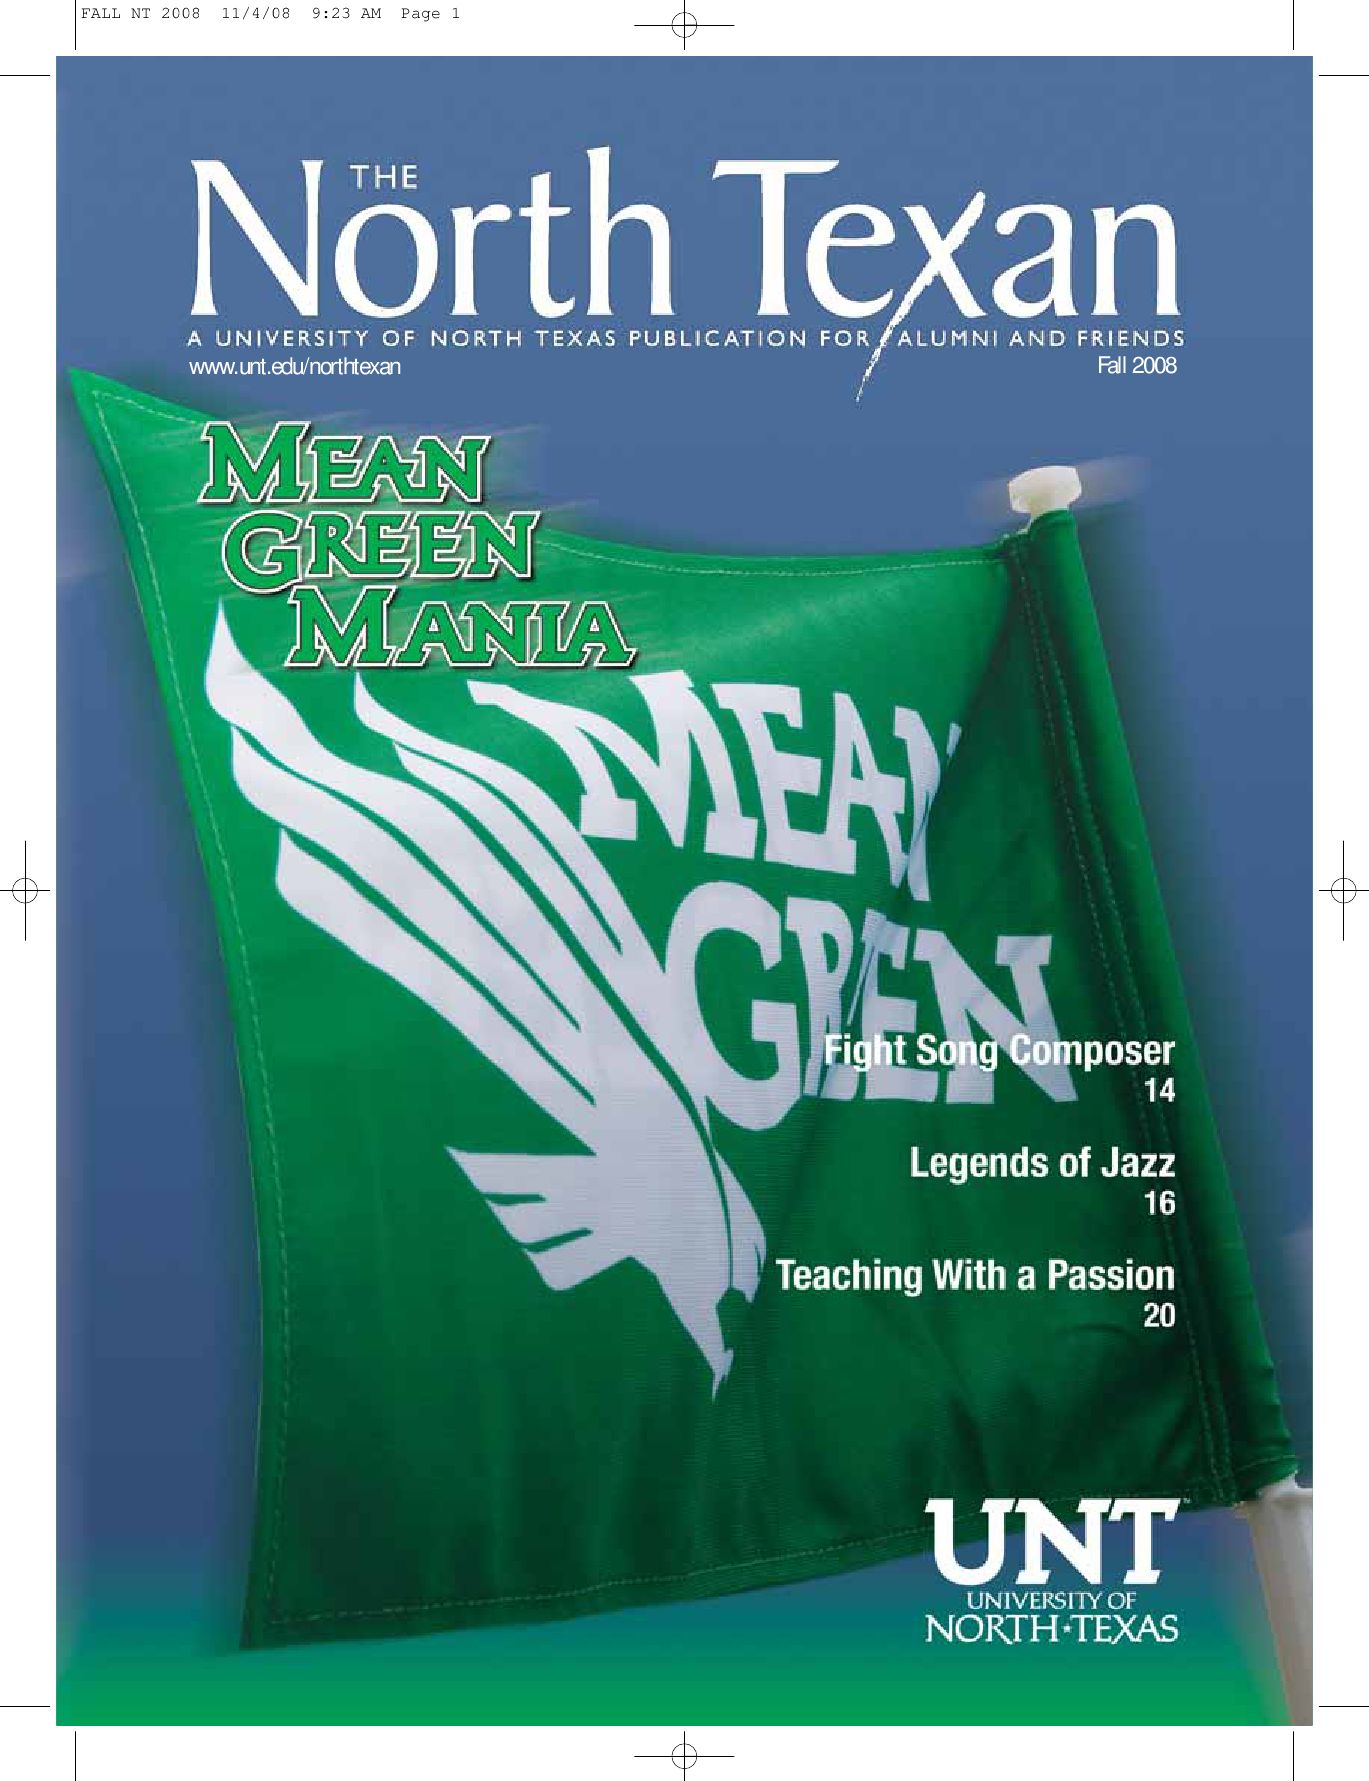 The aerie yearbook of university of north texas 1995 page 44 unt - The Aerie Yearbook Of University Of North Texas 1995 Page 44 Unt 42